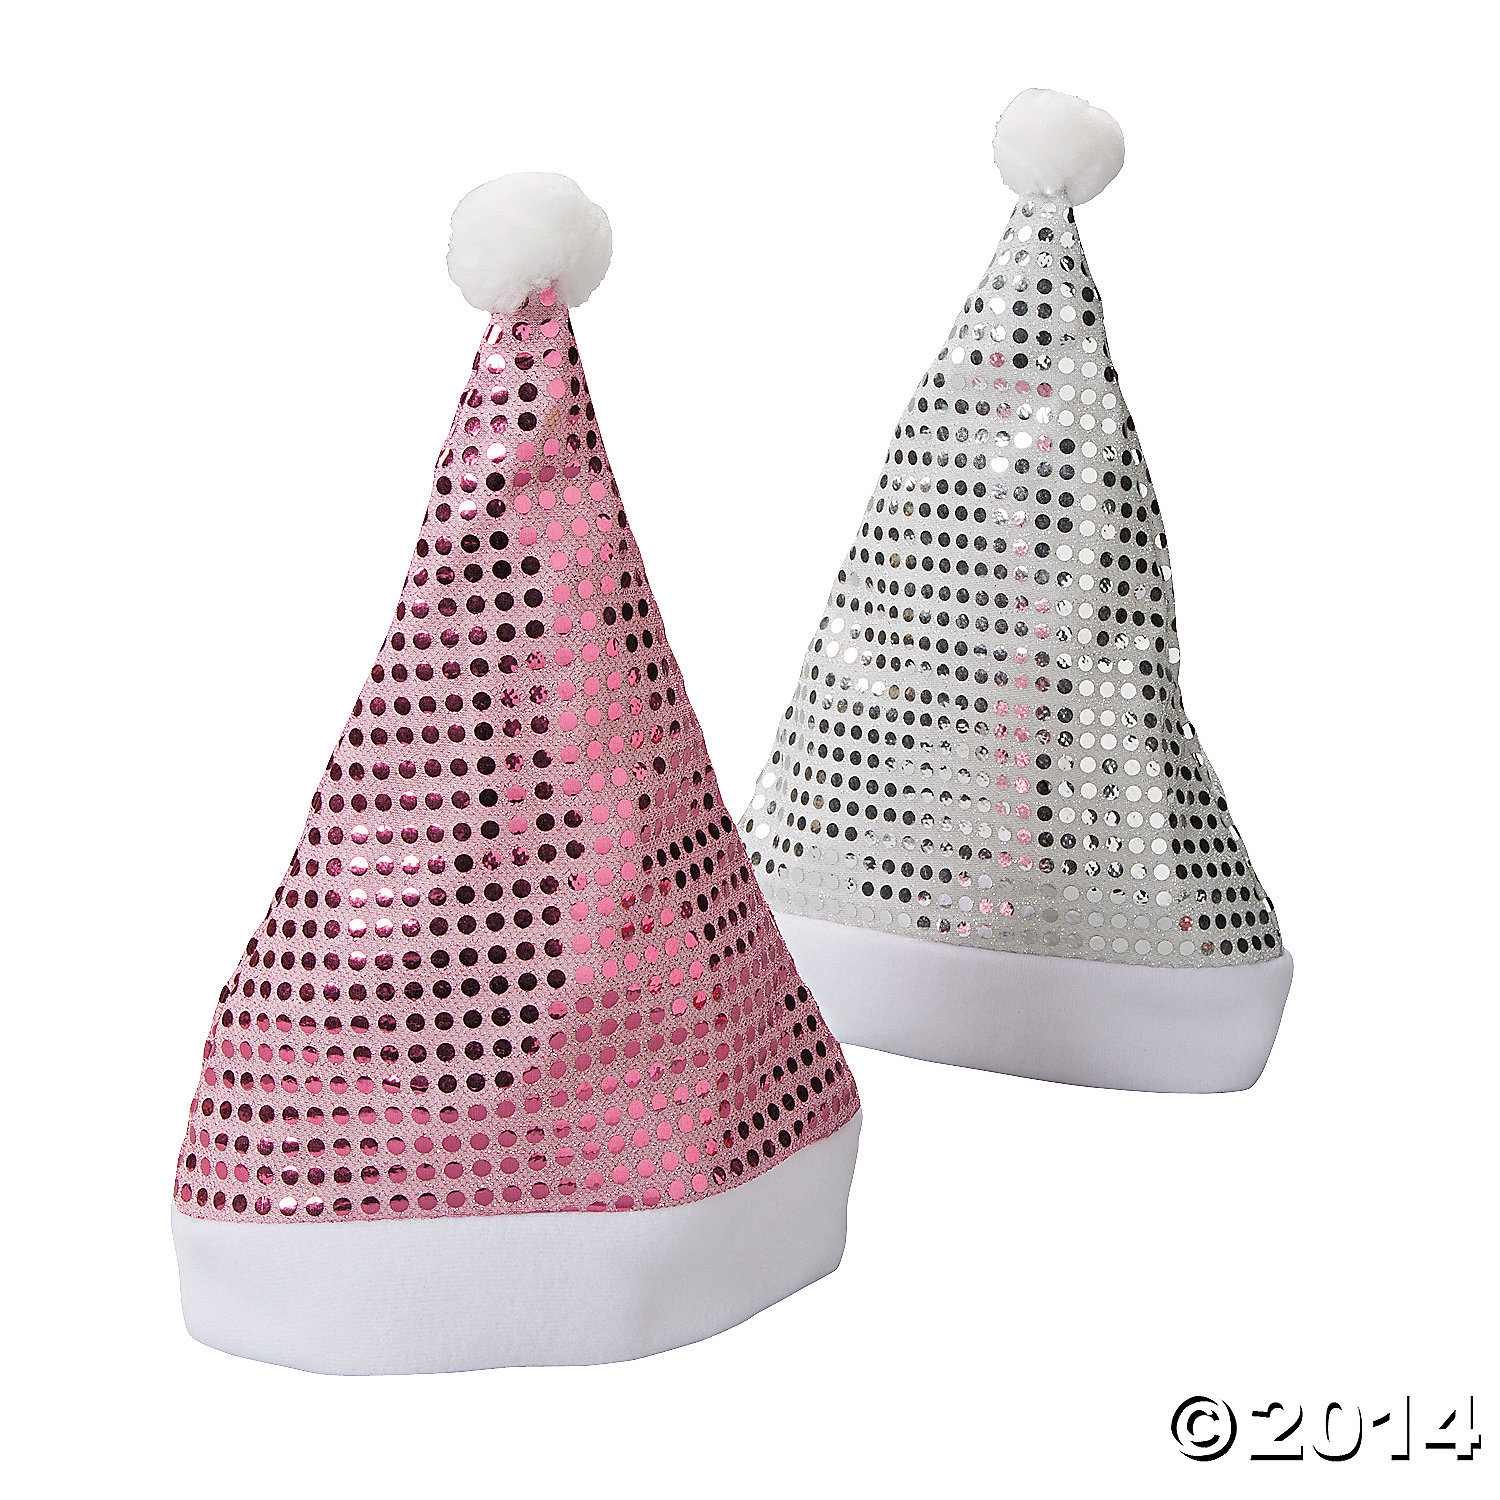 Polyester Sequin Santa Hats - Pink And Silver Assortment